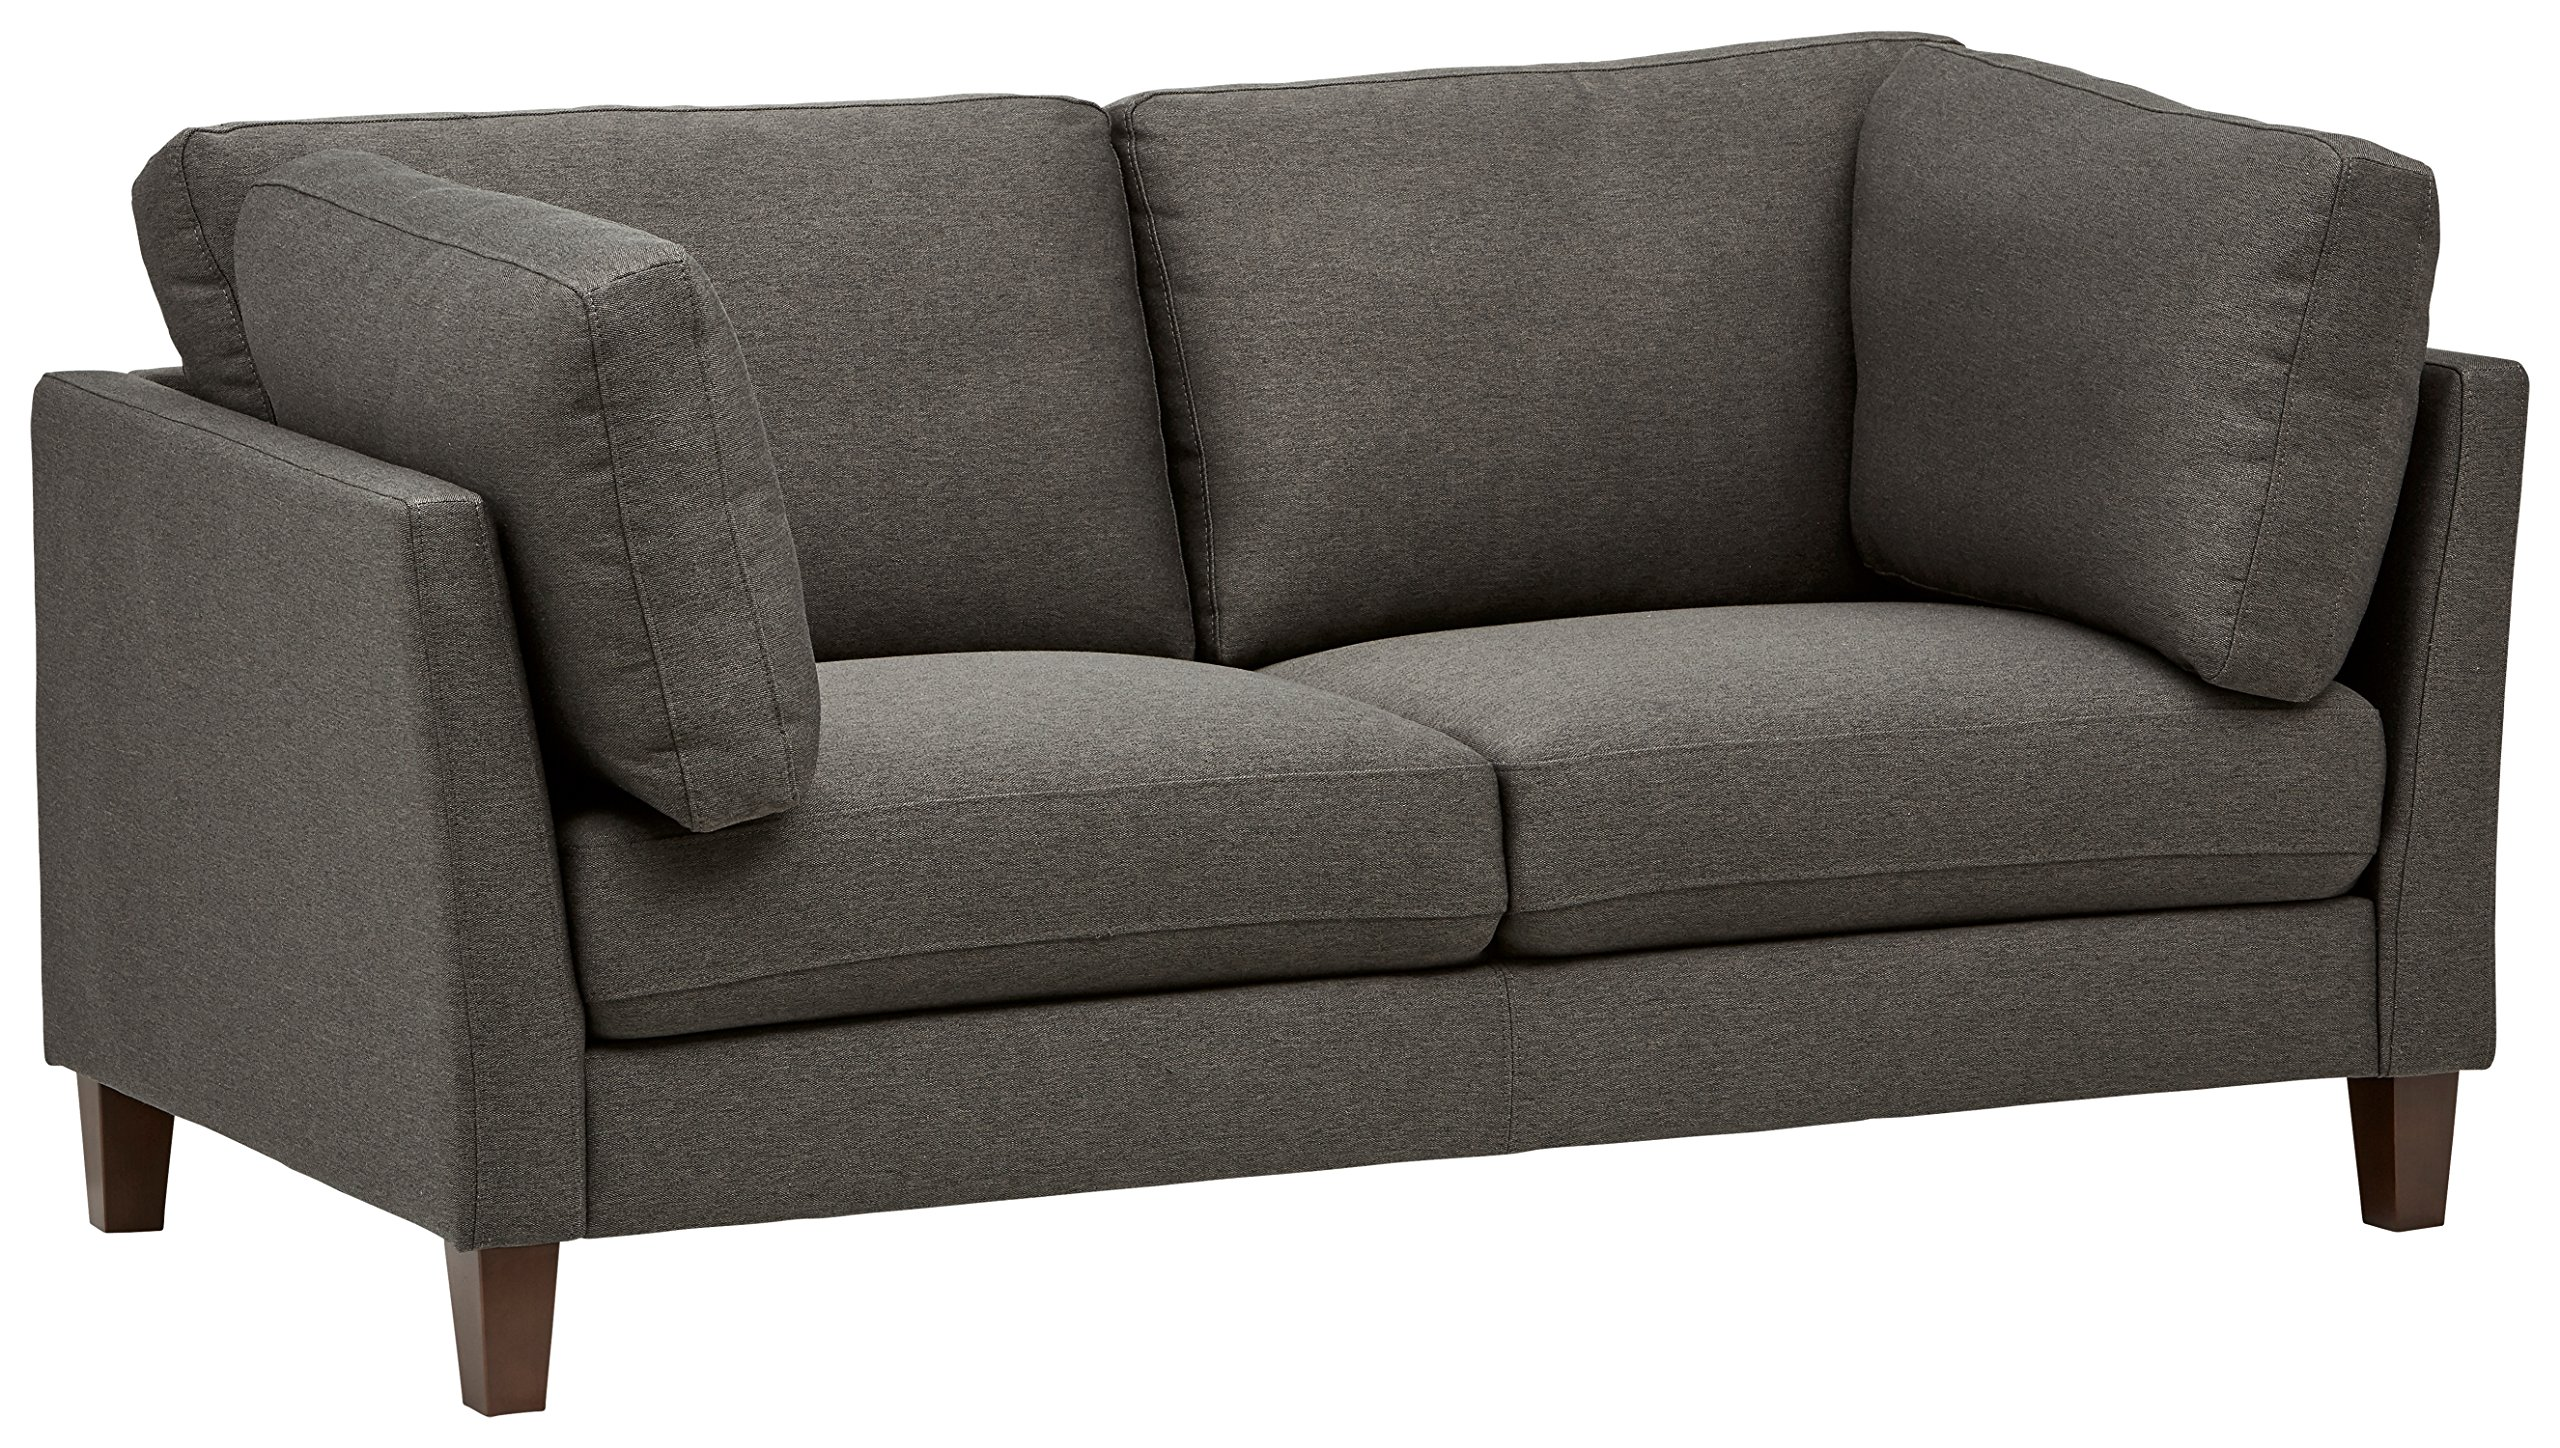 Rivet Midtown Removable Cushion Modern Loveseat, 68.5''W, Charcoal